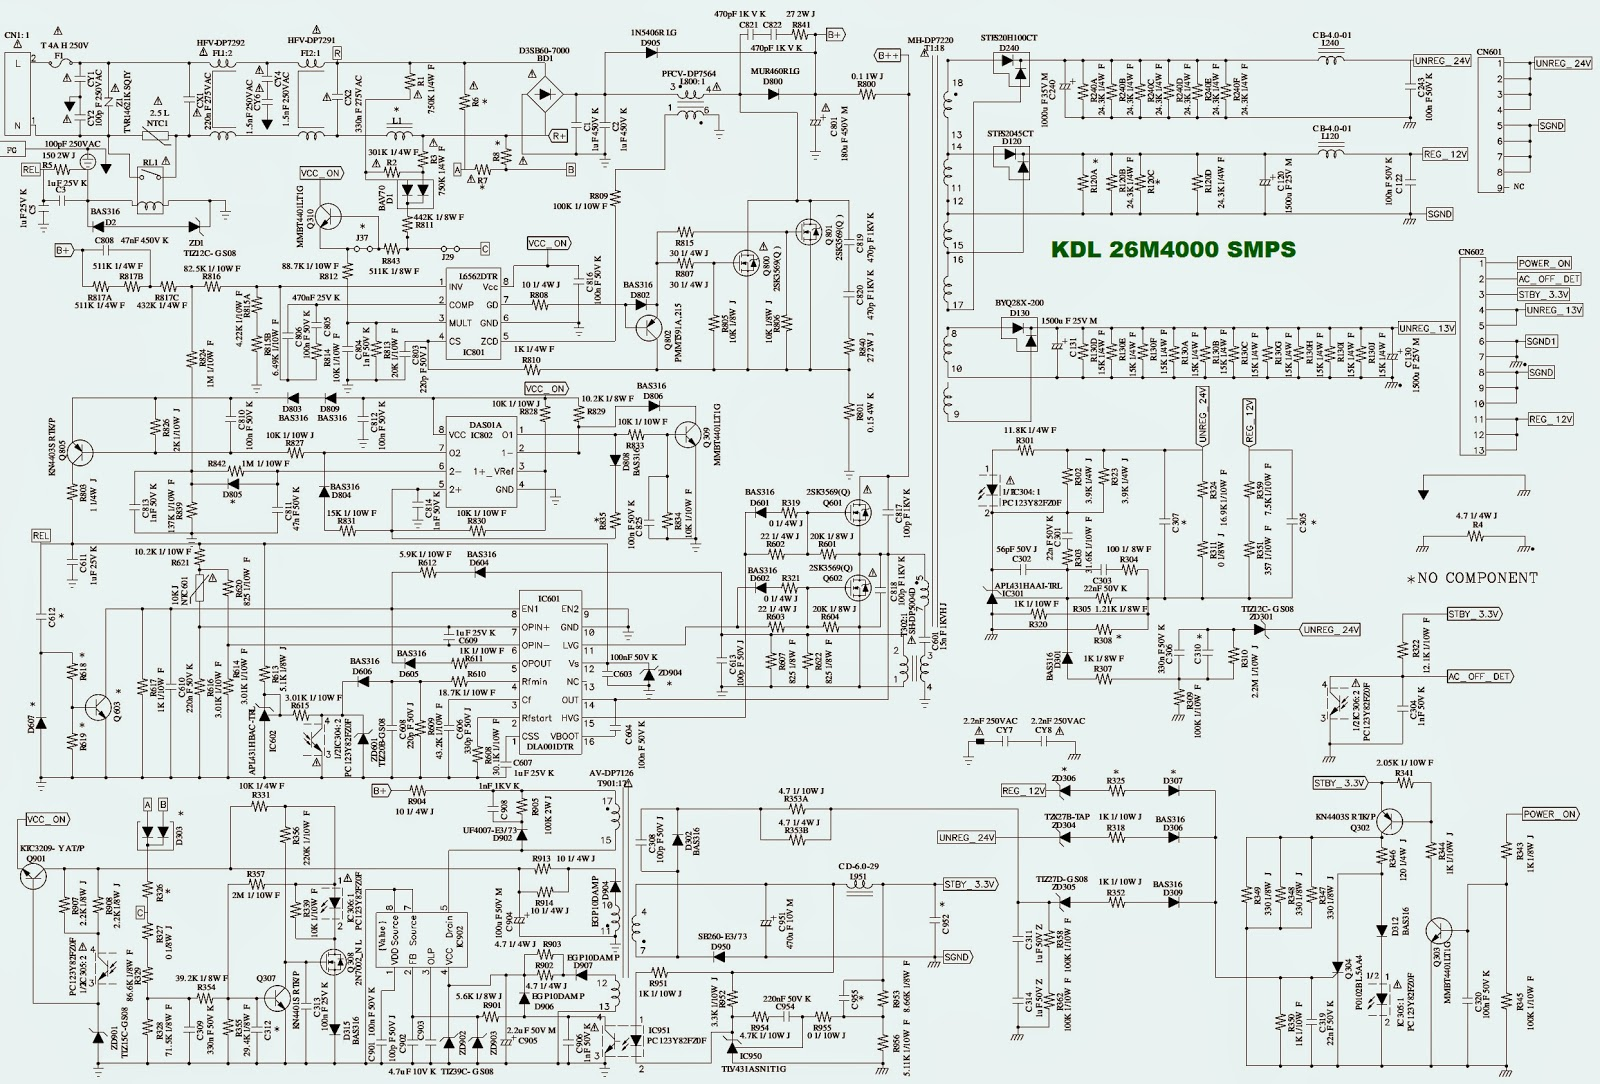 medium resolution of kdl 26m4000 sony bravia lcd tv power supply schematic circuit kdl 26m4000 sony bravia lcd